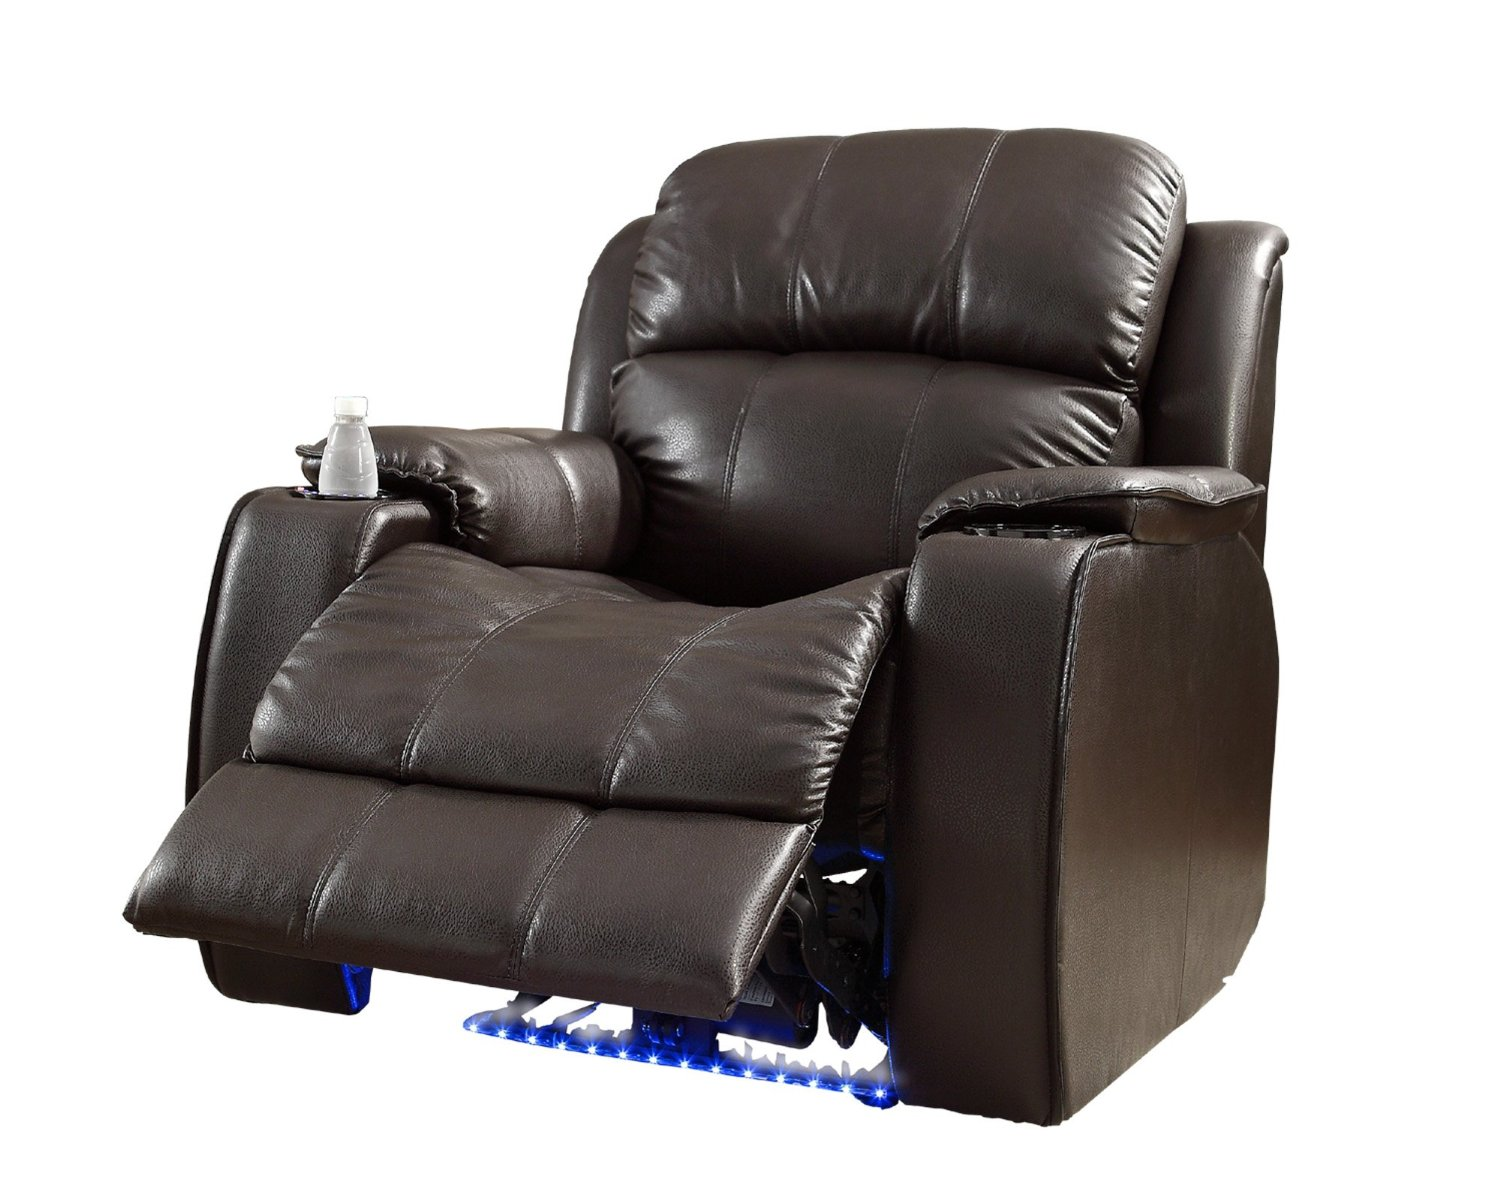 Top Rated Massage Chairs 6 Ultimate Chairs For Your Man Cave